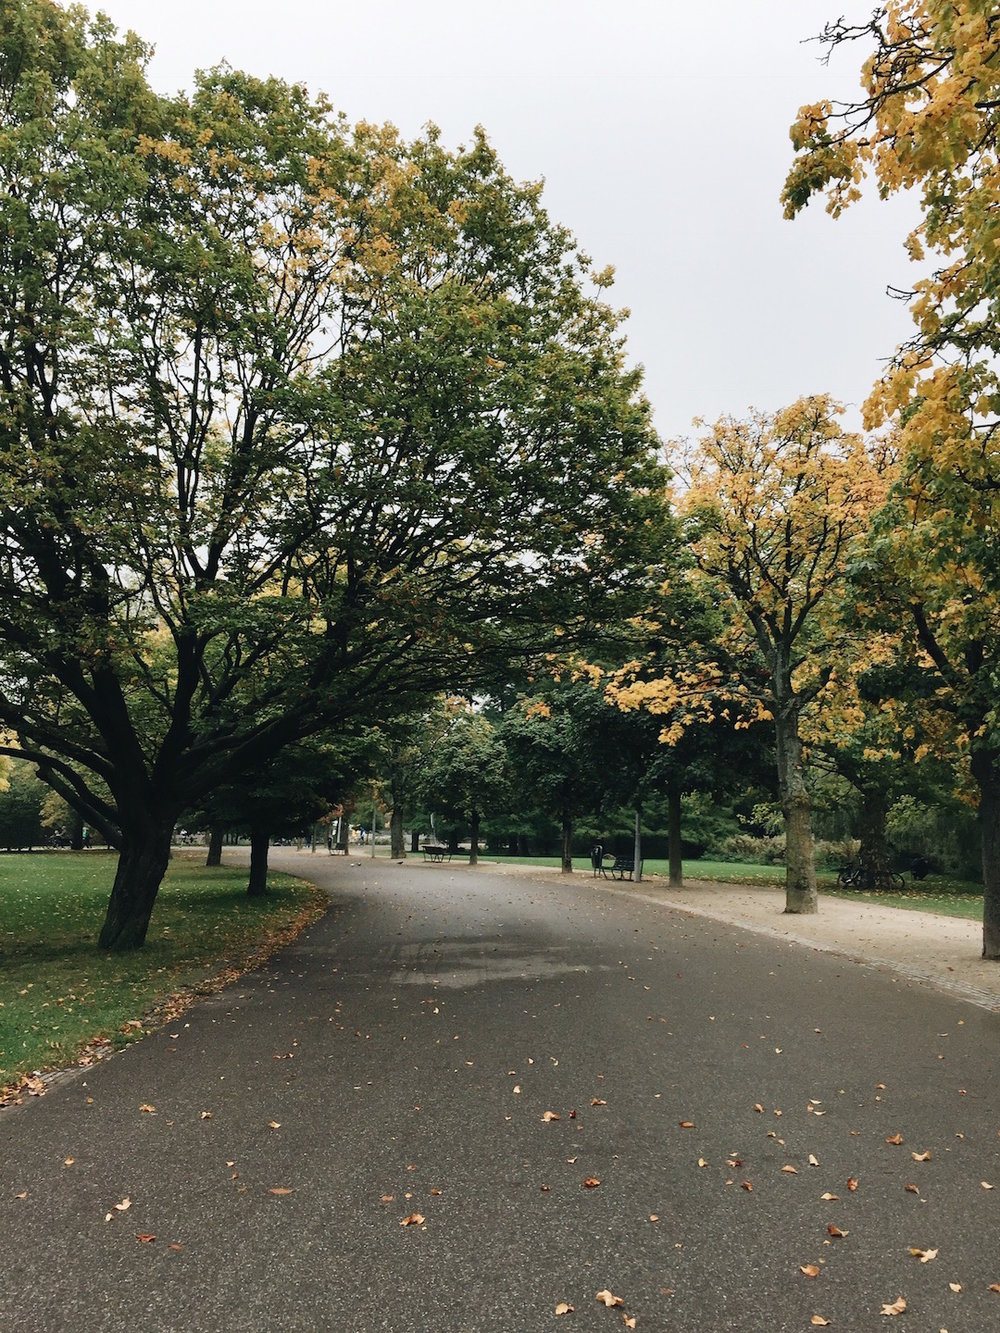 The beautiful escape that is Vondelpark. It doesn't get much better than this.